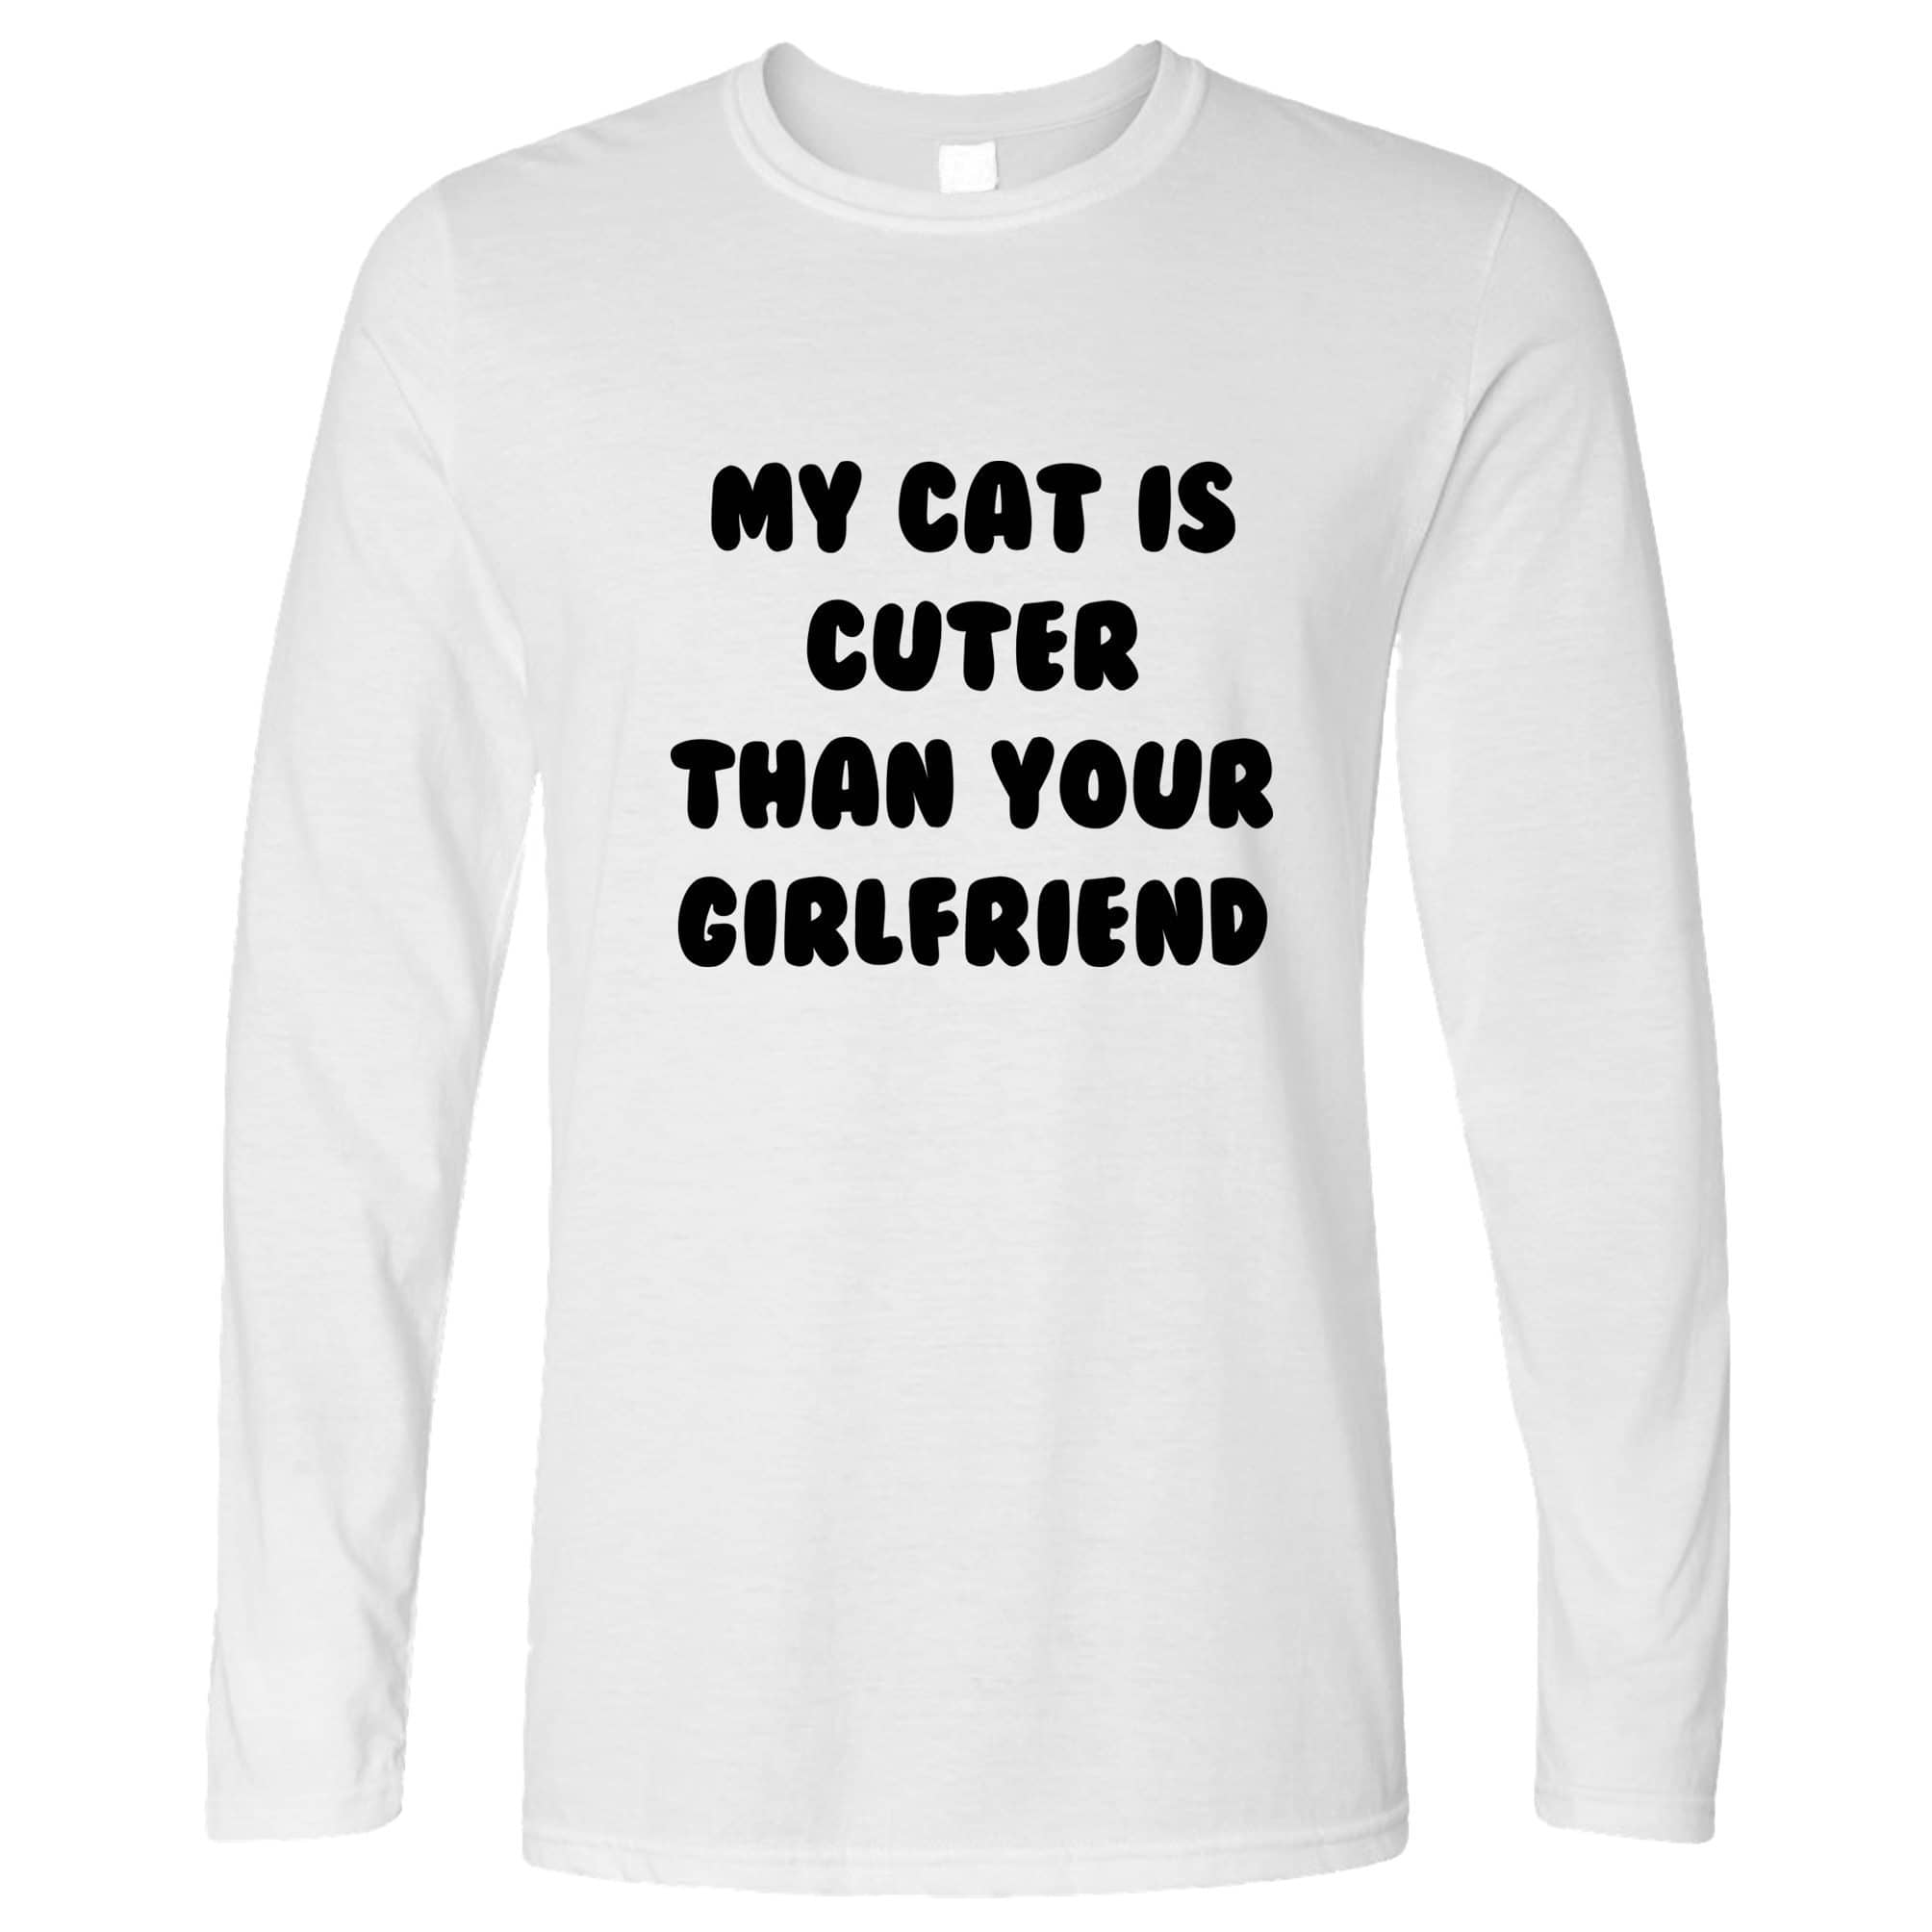 Cats Animals Long Sleeve Cat Cuter Than Your Girlfriend T-Shirt